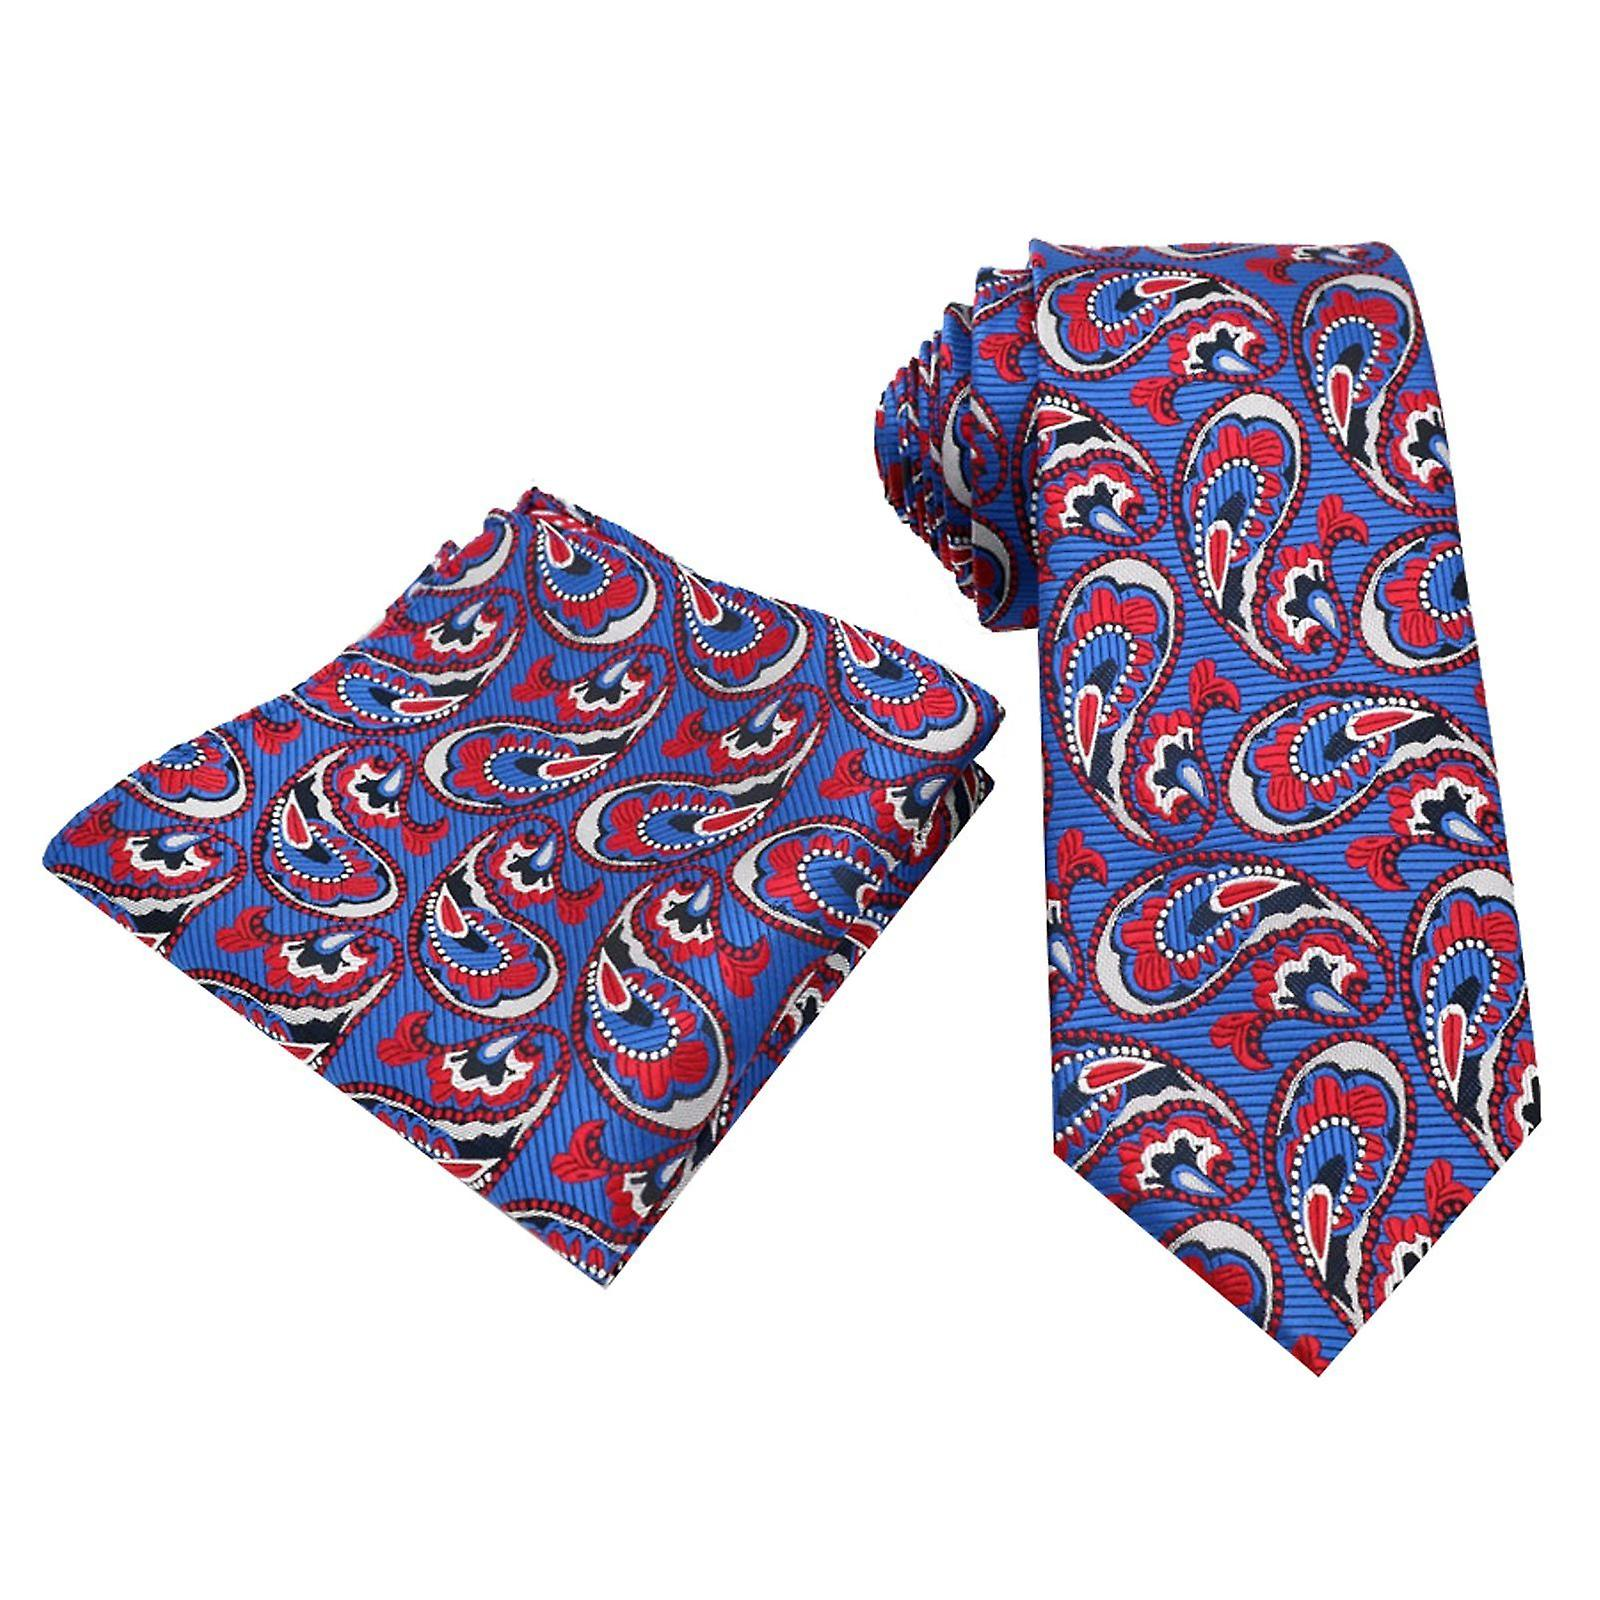 Blue red silver oat paisley pattern tie & pocket square